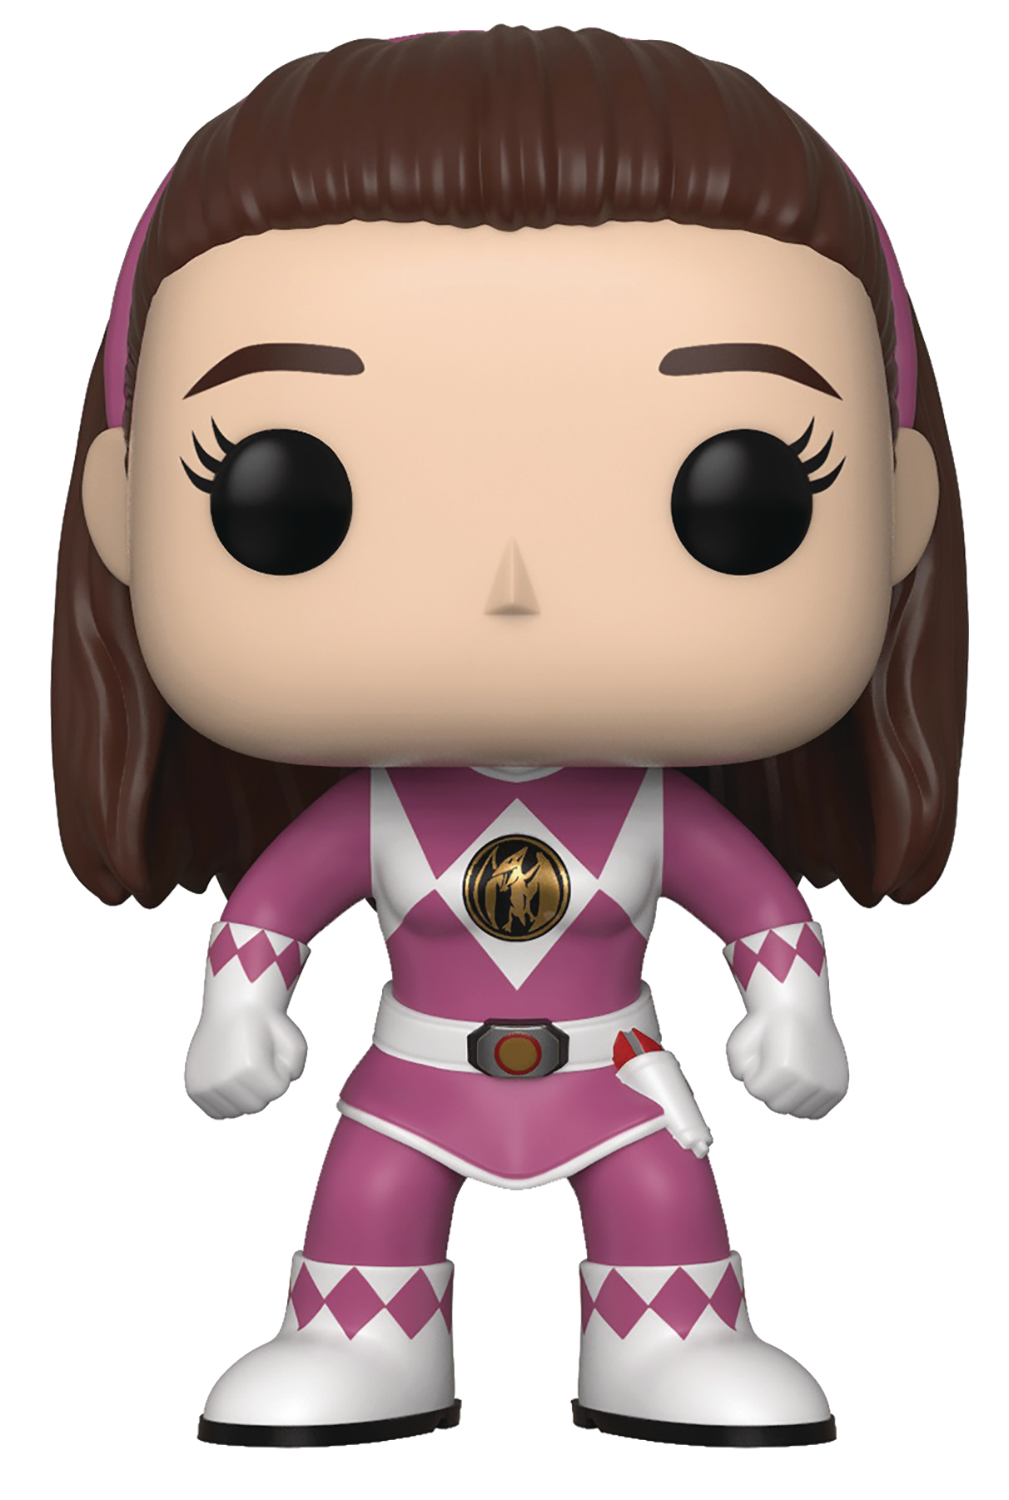 POP TV POWER RANGERS S7 KIMBERLY VINYL FIG